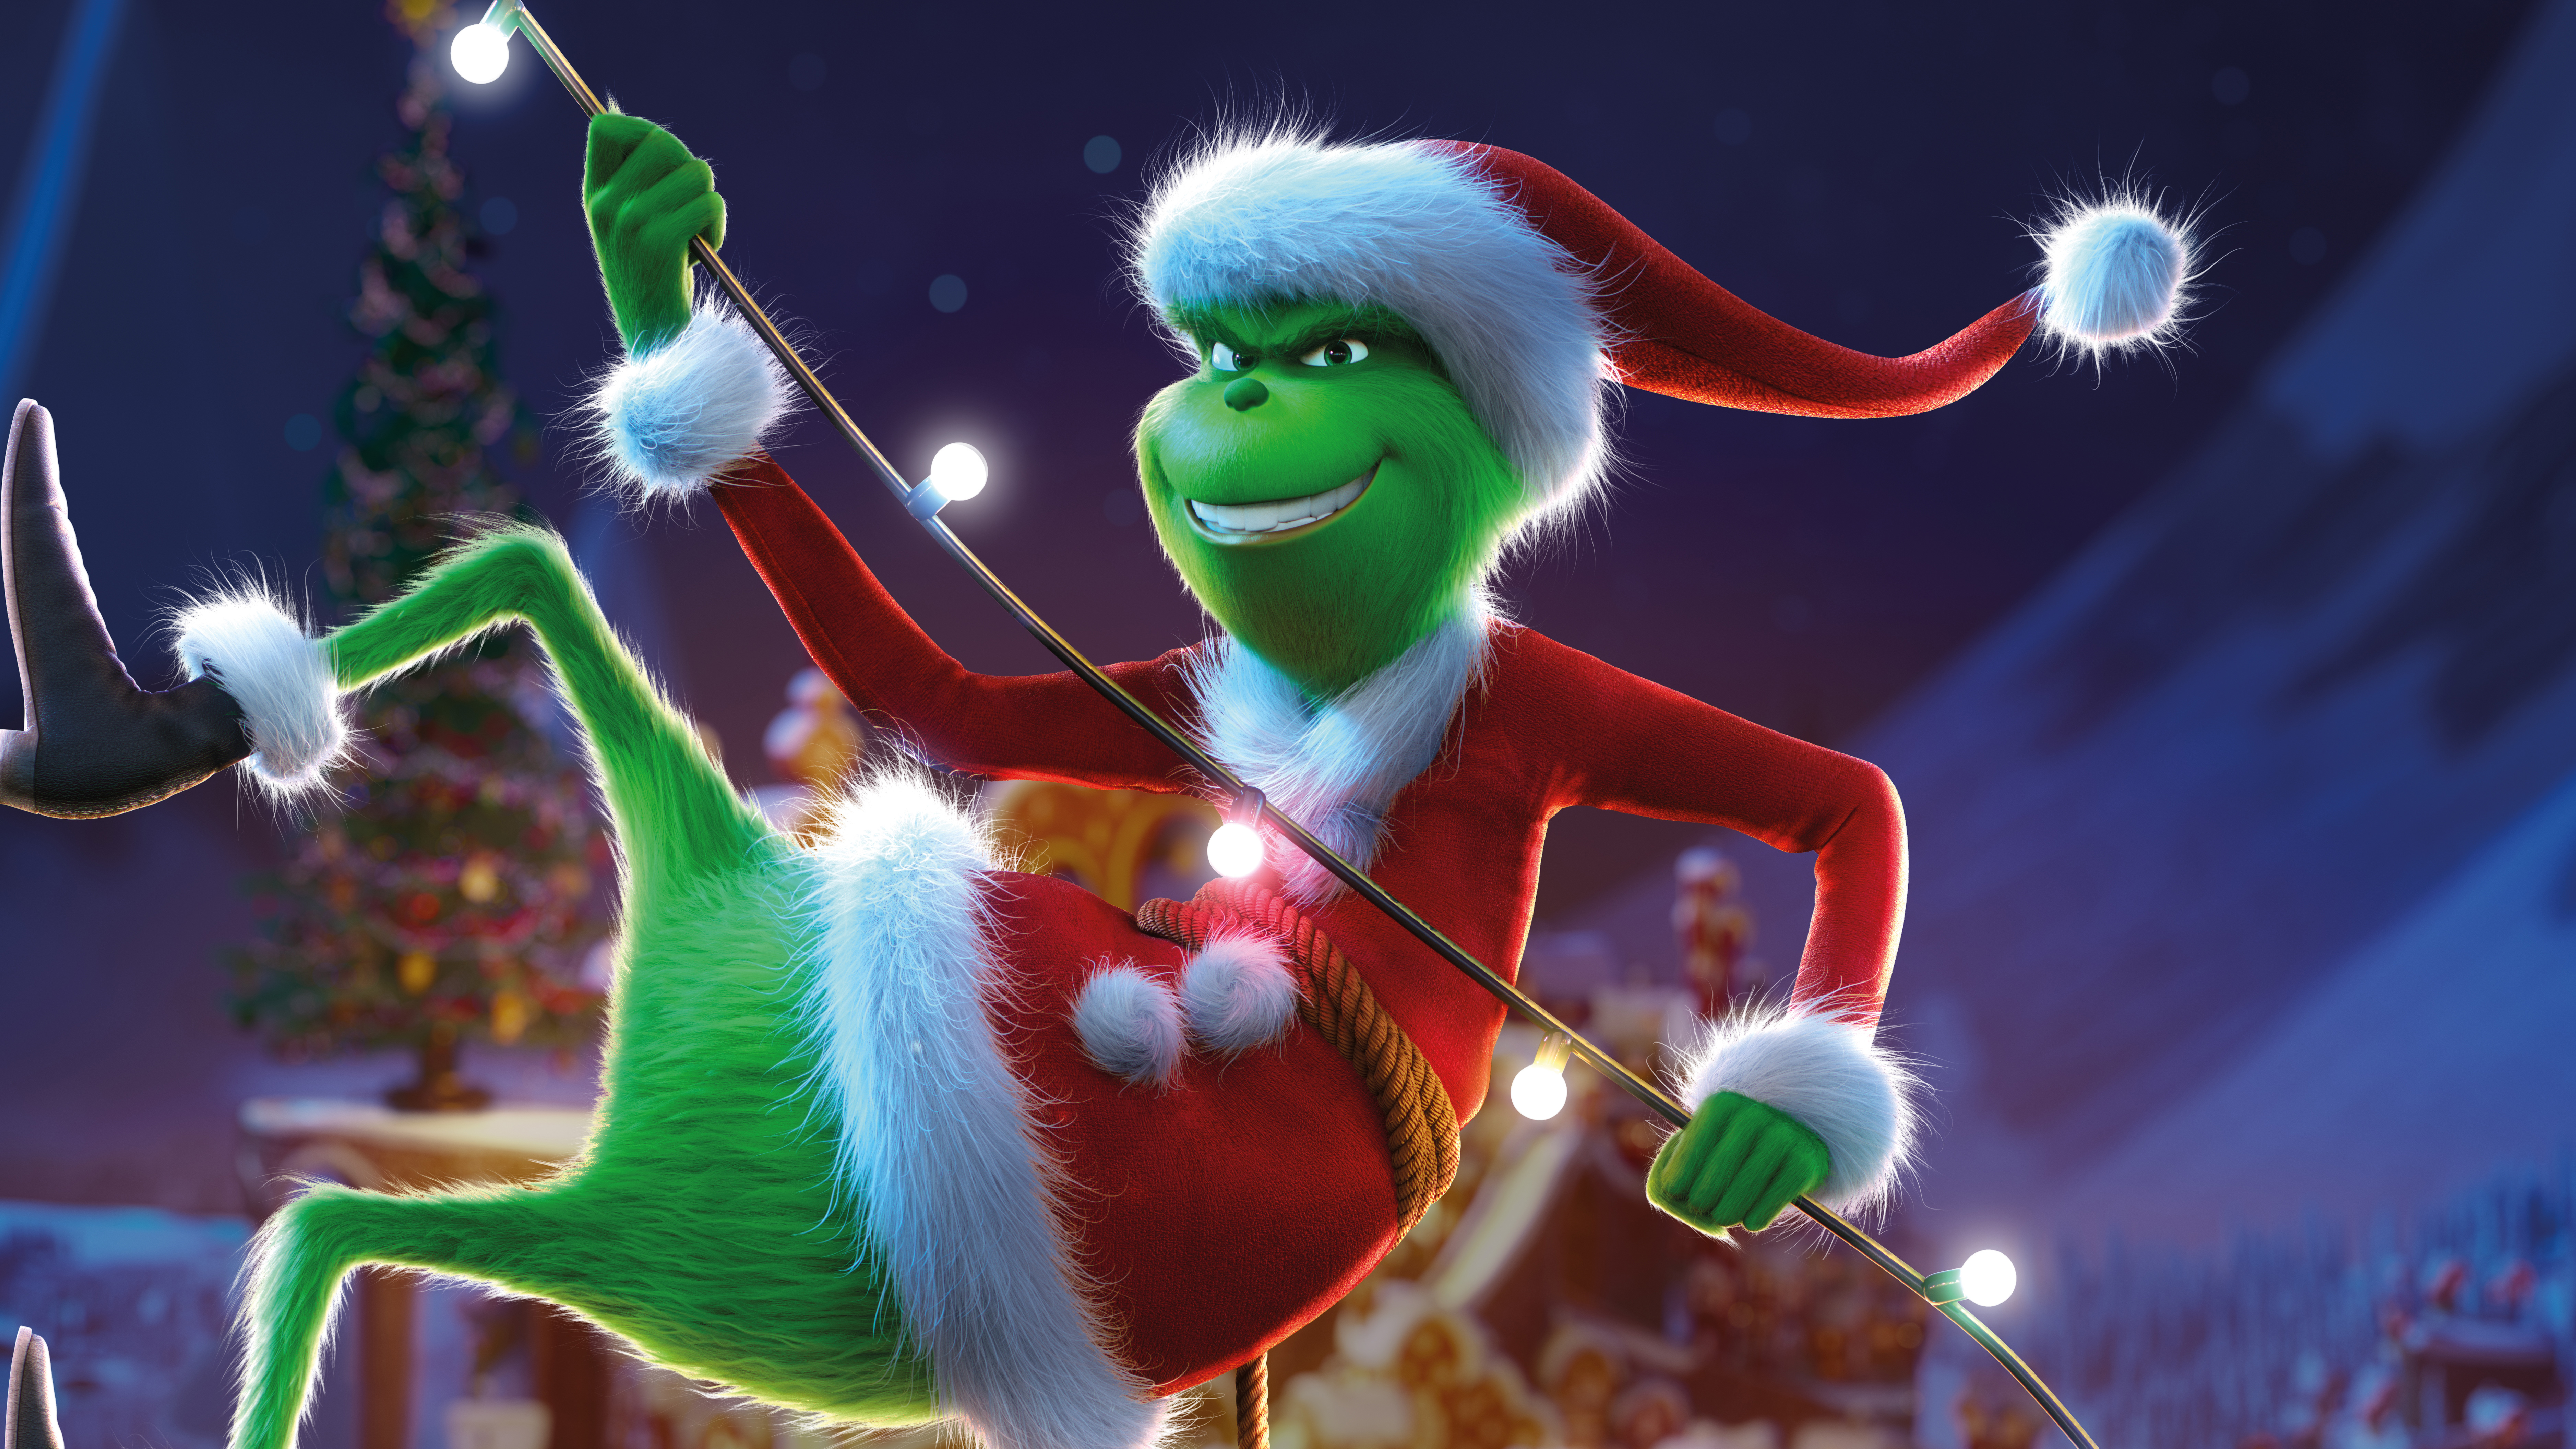 Grinch 2018 3124449   HD Wallpaper Backgrounds Download 7500x4218